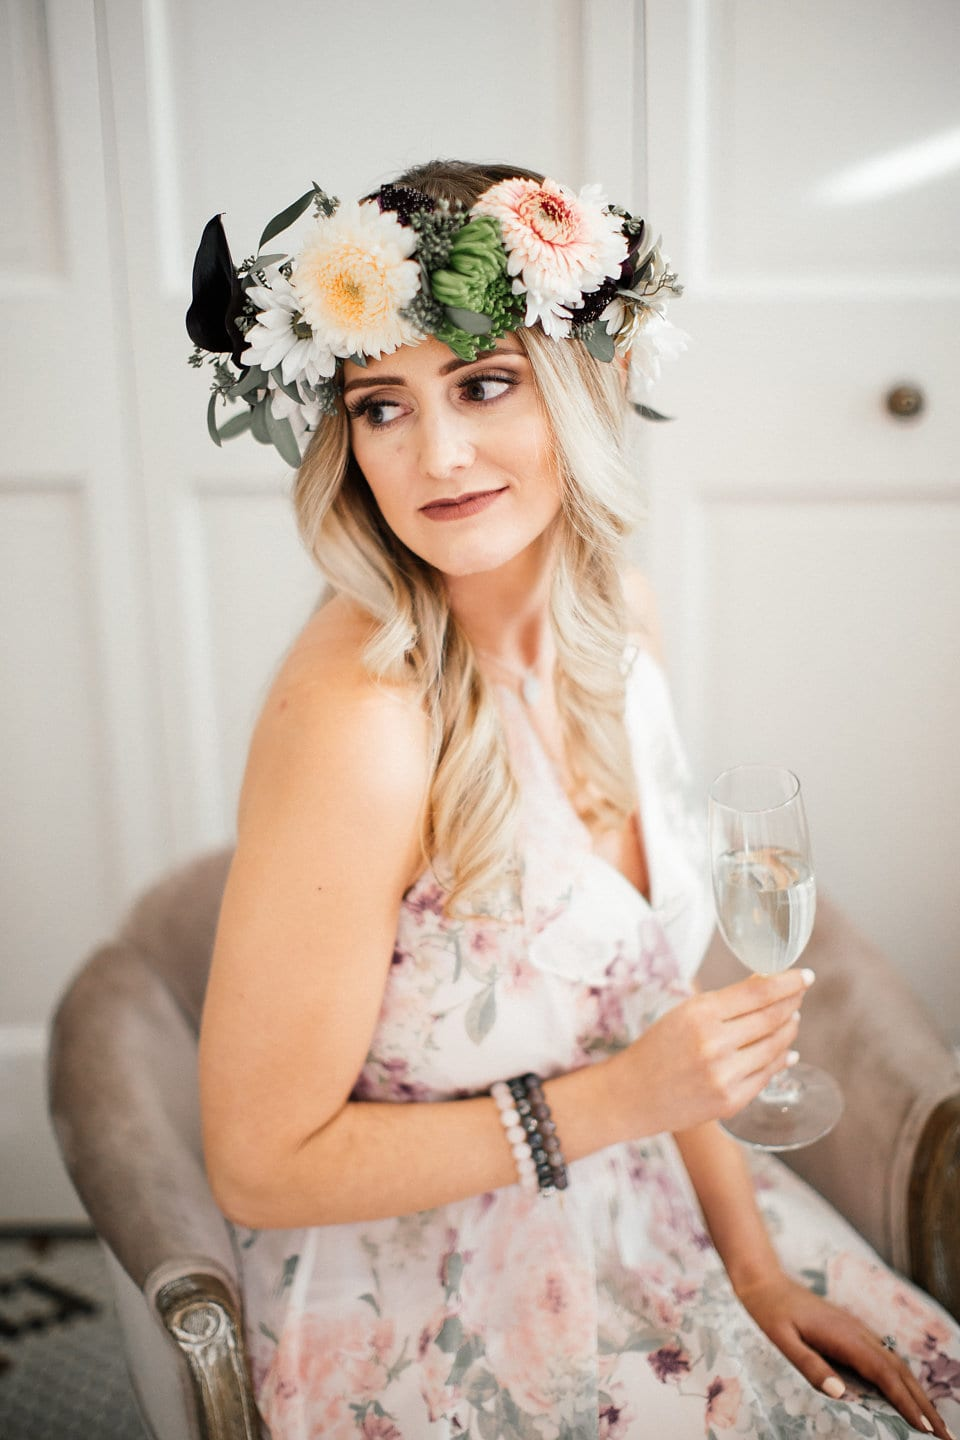 Flow Event Group, Forever Bridal, boho bride, bridal shower, bridal party, bridal brunch, wedding events, wedding inspiration, bride, bride to be, floral crowns, bridal crown, wedding floral, wedding flowers, Artemisia Studios, Minneapolis wedding florist